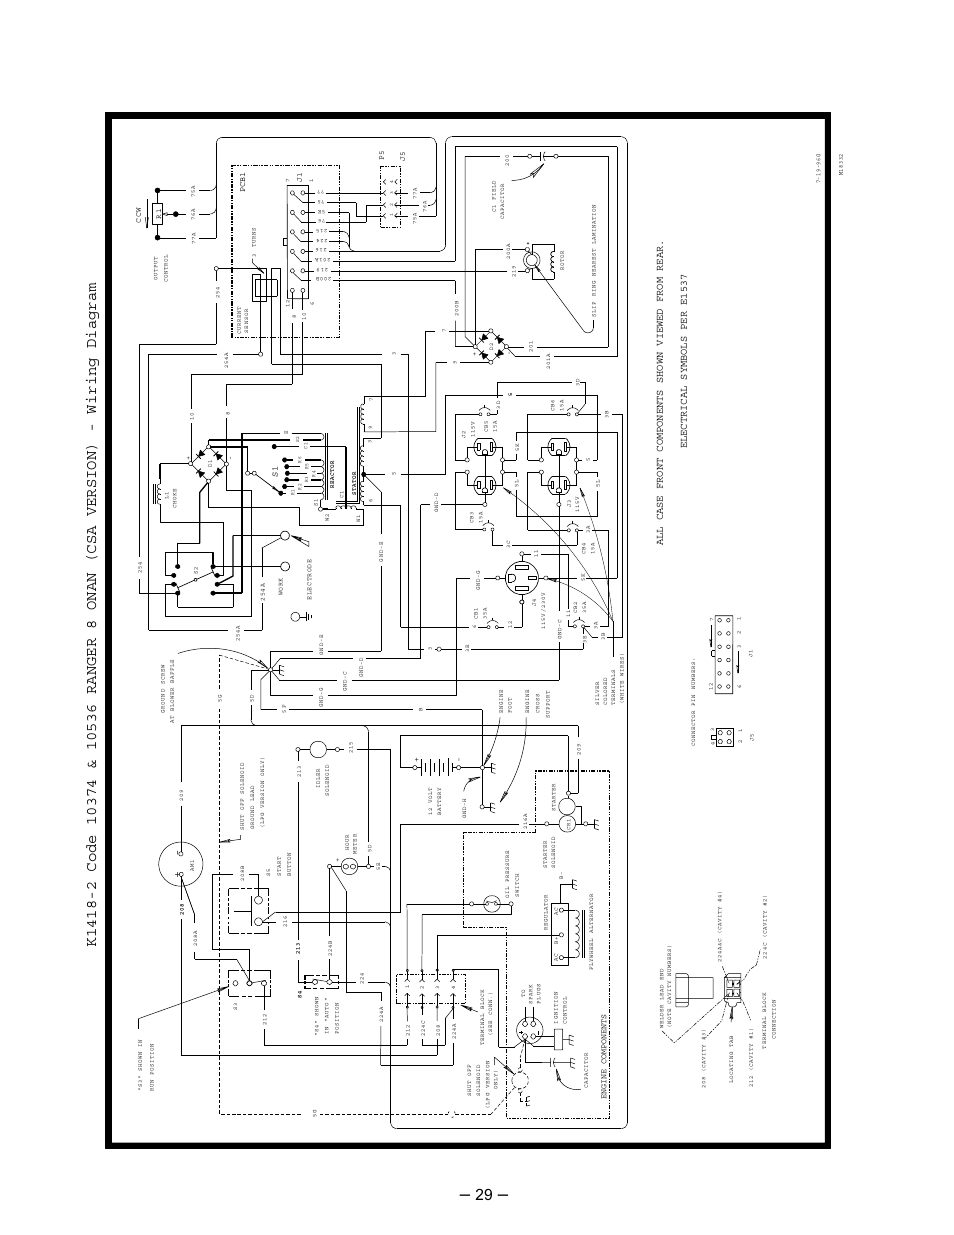 electrical symbols per e1537 all case front components shown viewed rh manualsdir com lincoln ranger 8 welder wiring diagram 2010 Ford Ranger Wiring Diagram